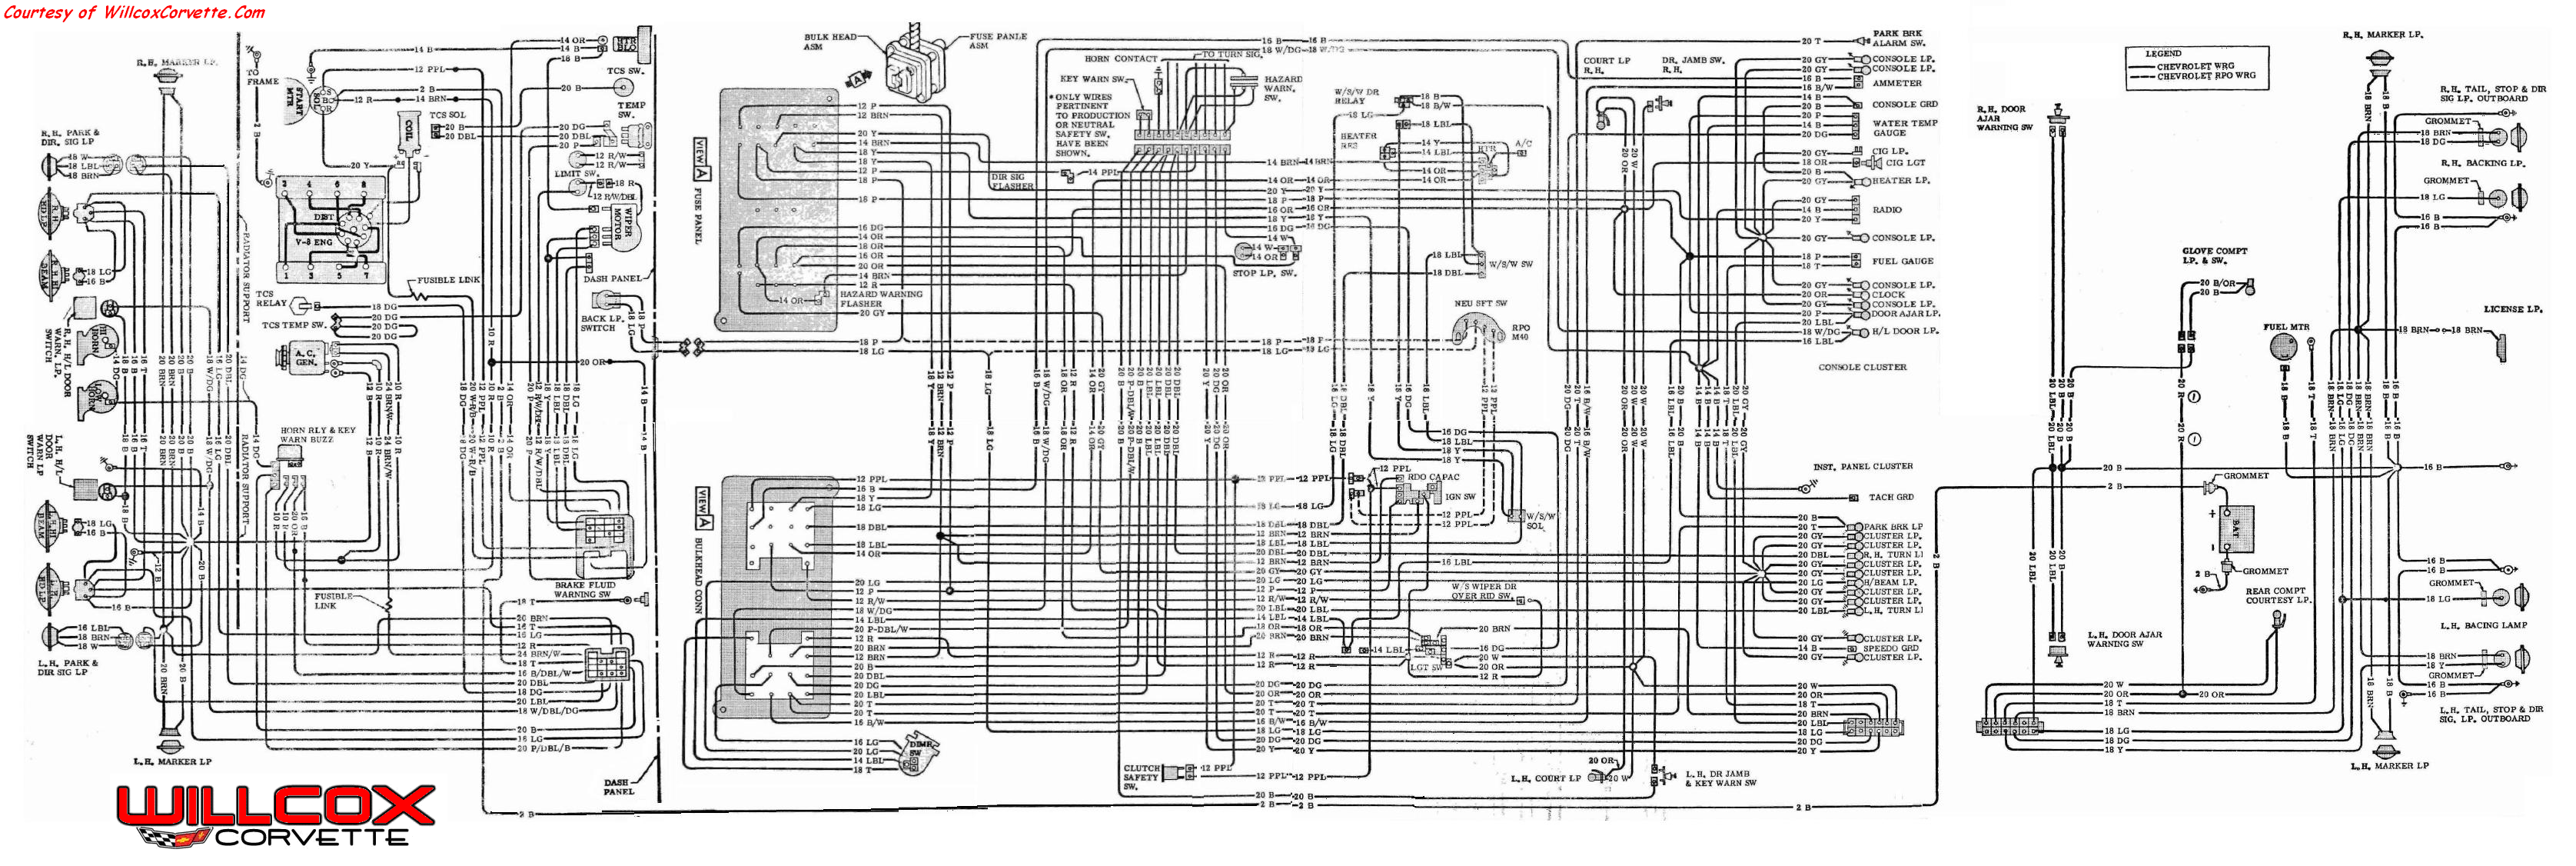 1970 corvette wire schematic tracer 1970 backup light switch and ac connections? corvetteforum 1970 corvette wiring diagram at honlapkeszites.co